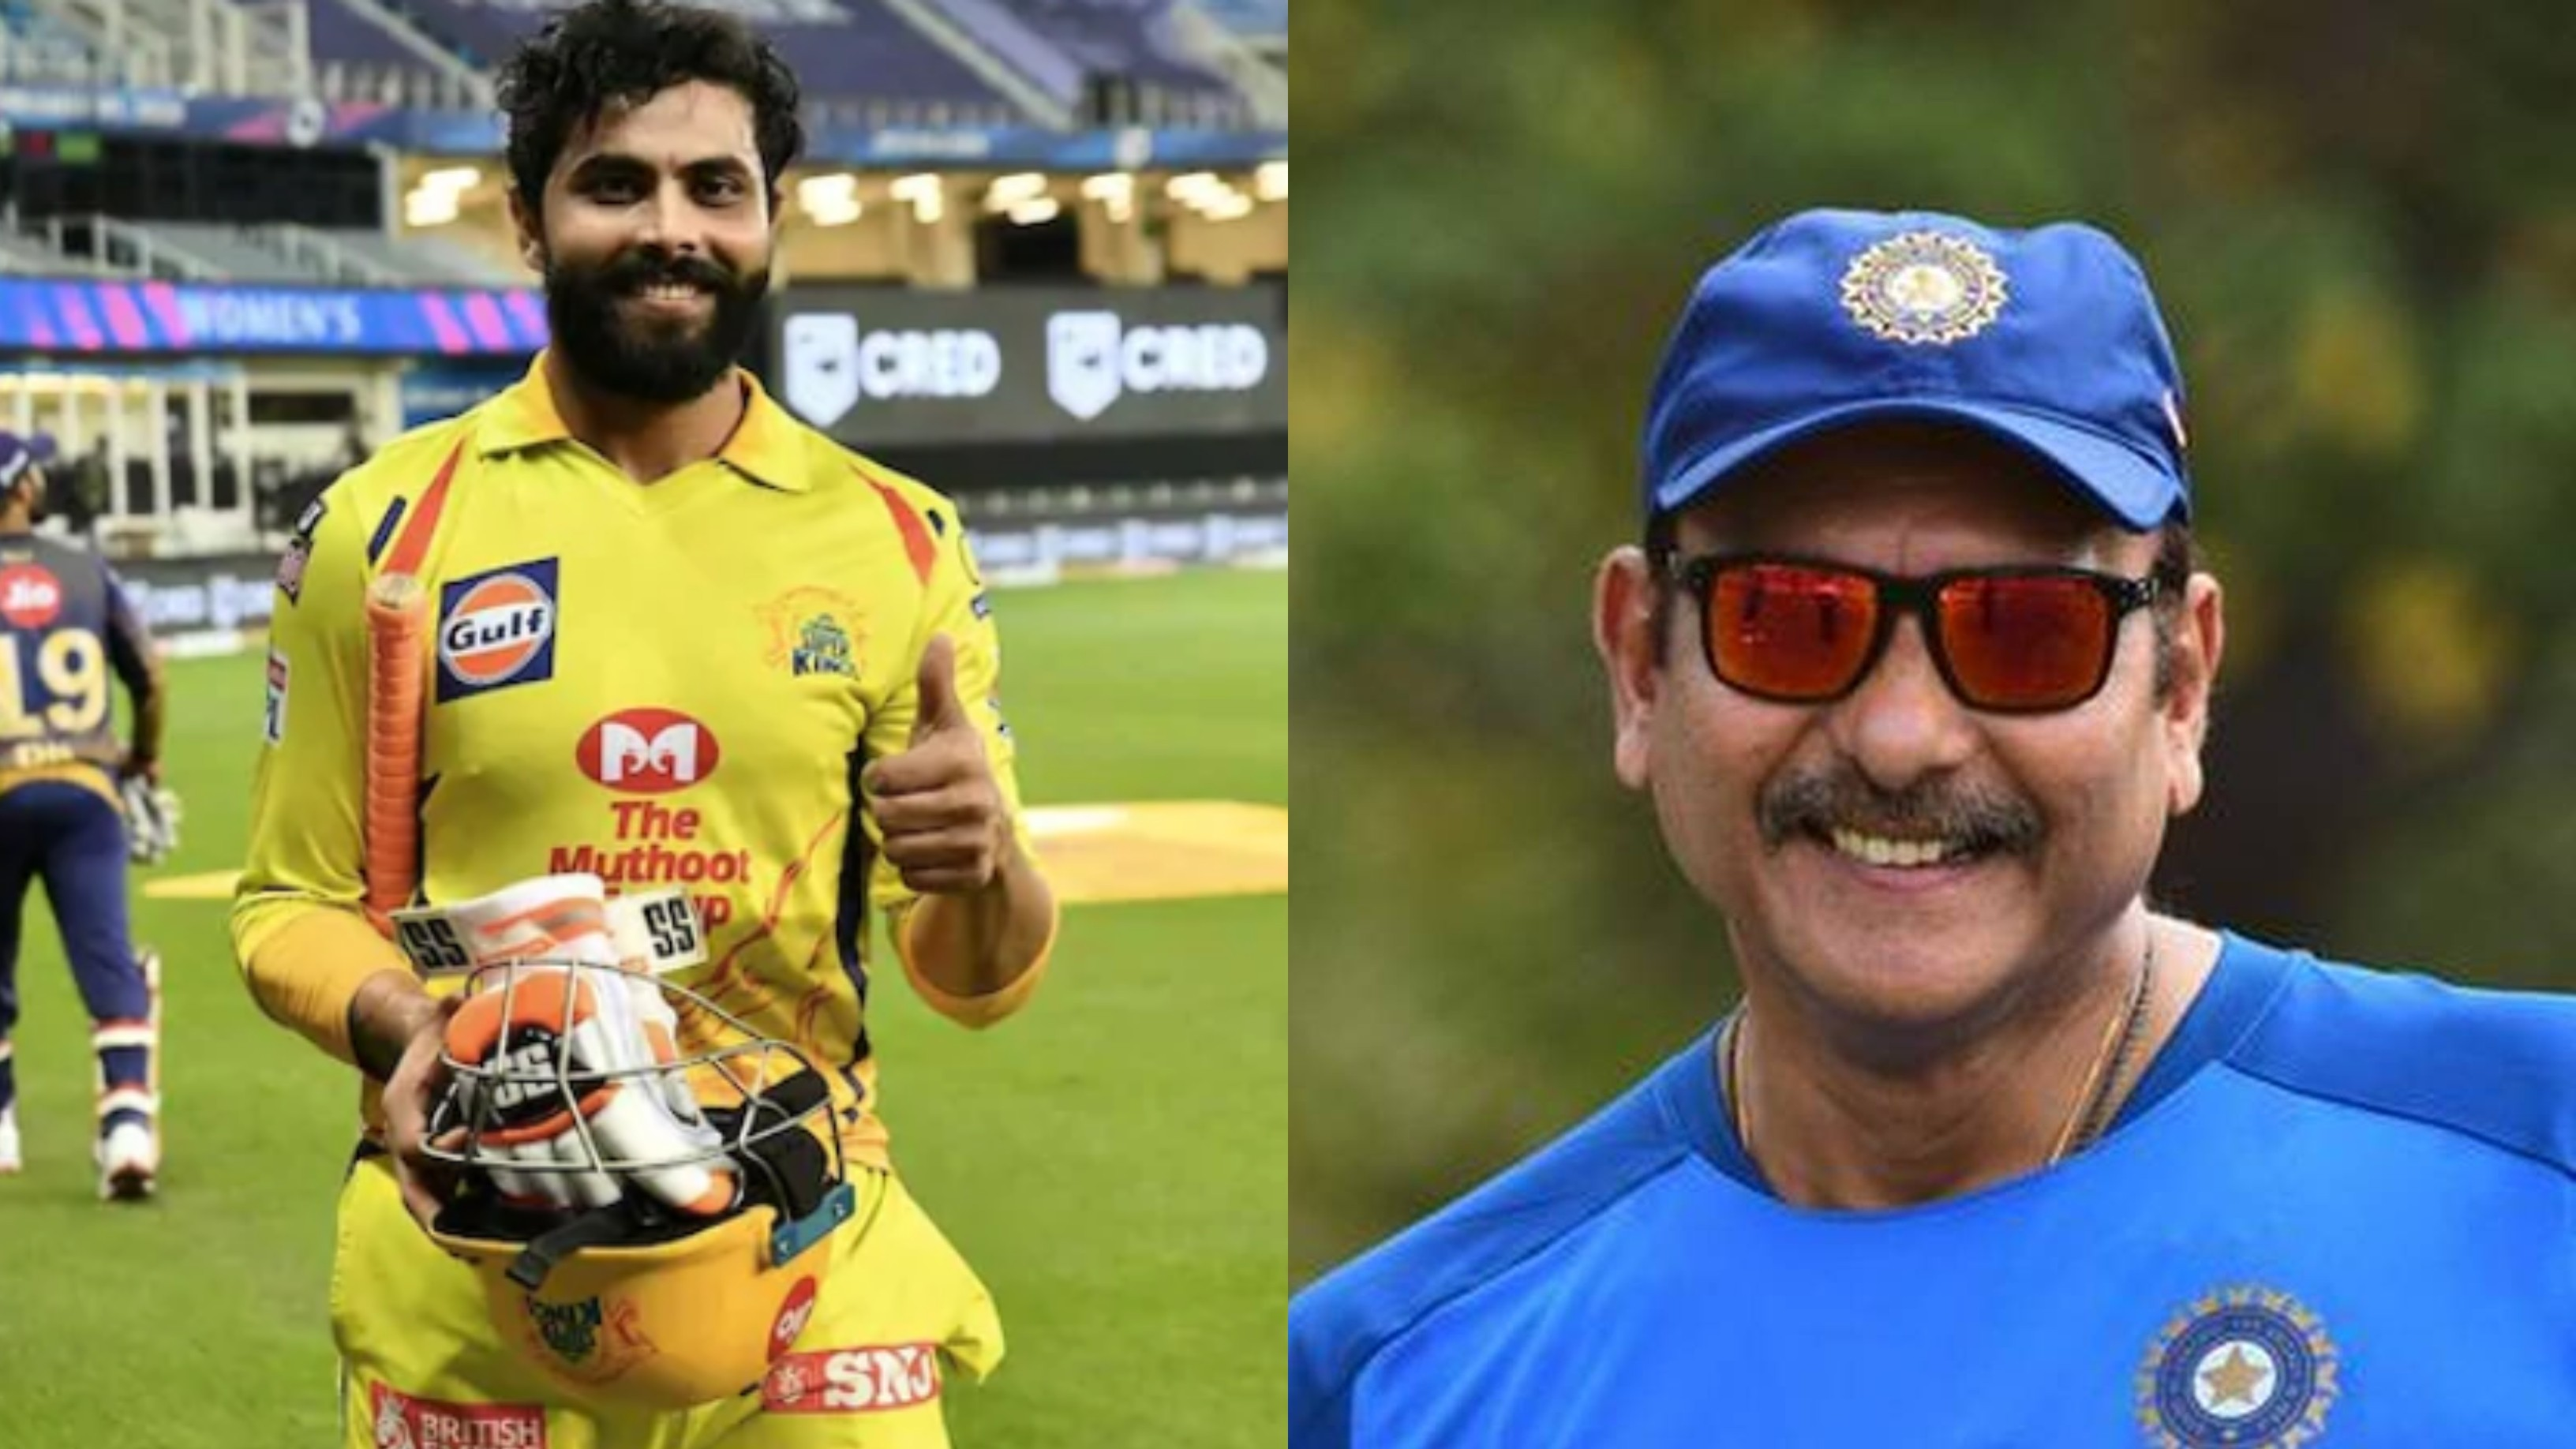 IPL 2020: Ravi Shastri hails Ravindra Jadeja for his batting heroics against KKR